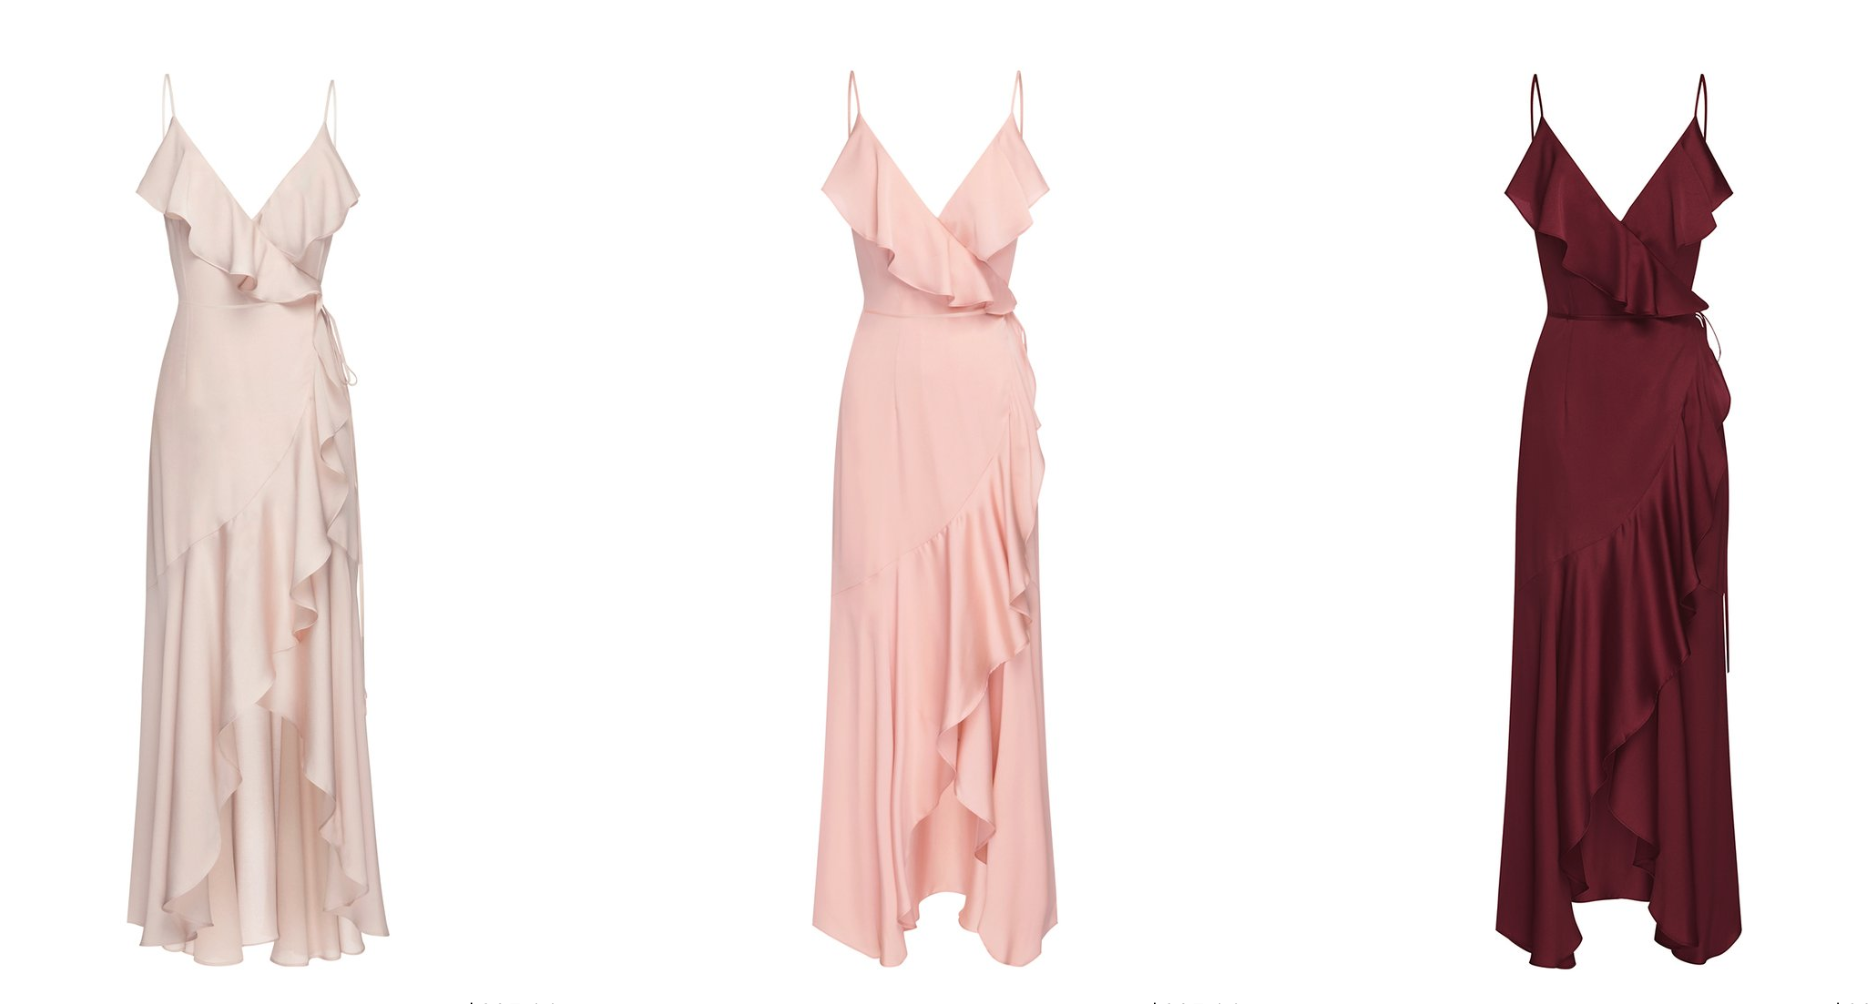 LUXE BIAS FRILL WRAP DRESS - Shona Joy featured on LOVE FIND CO.